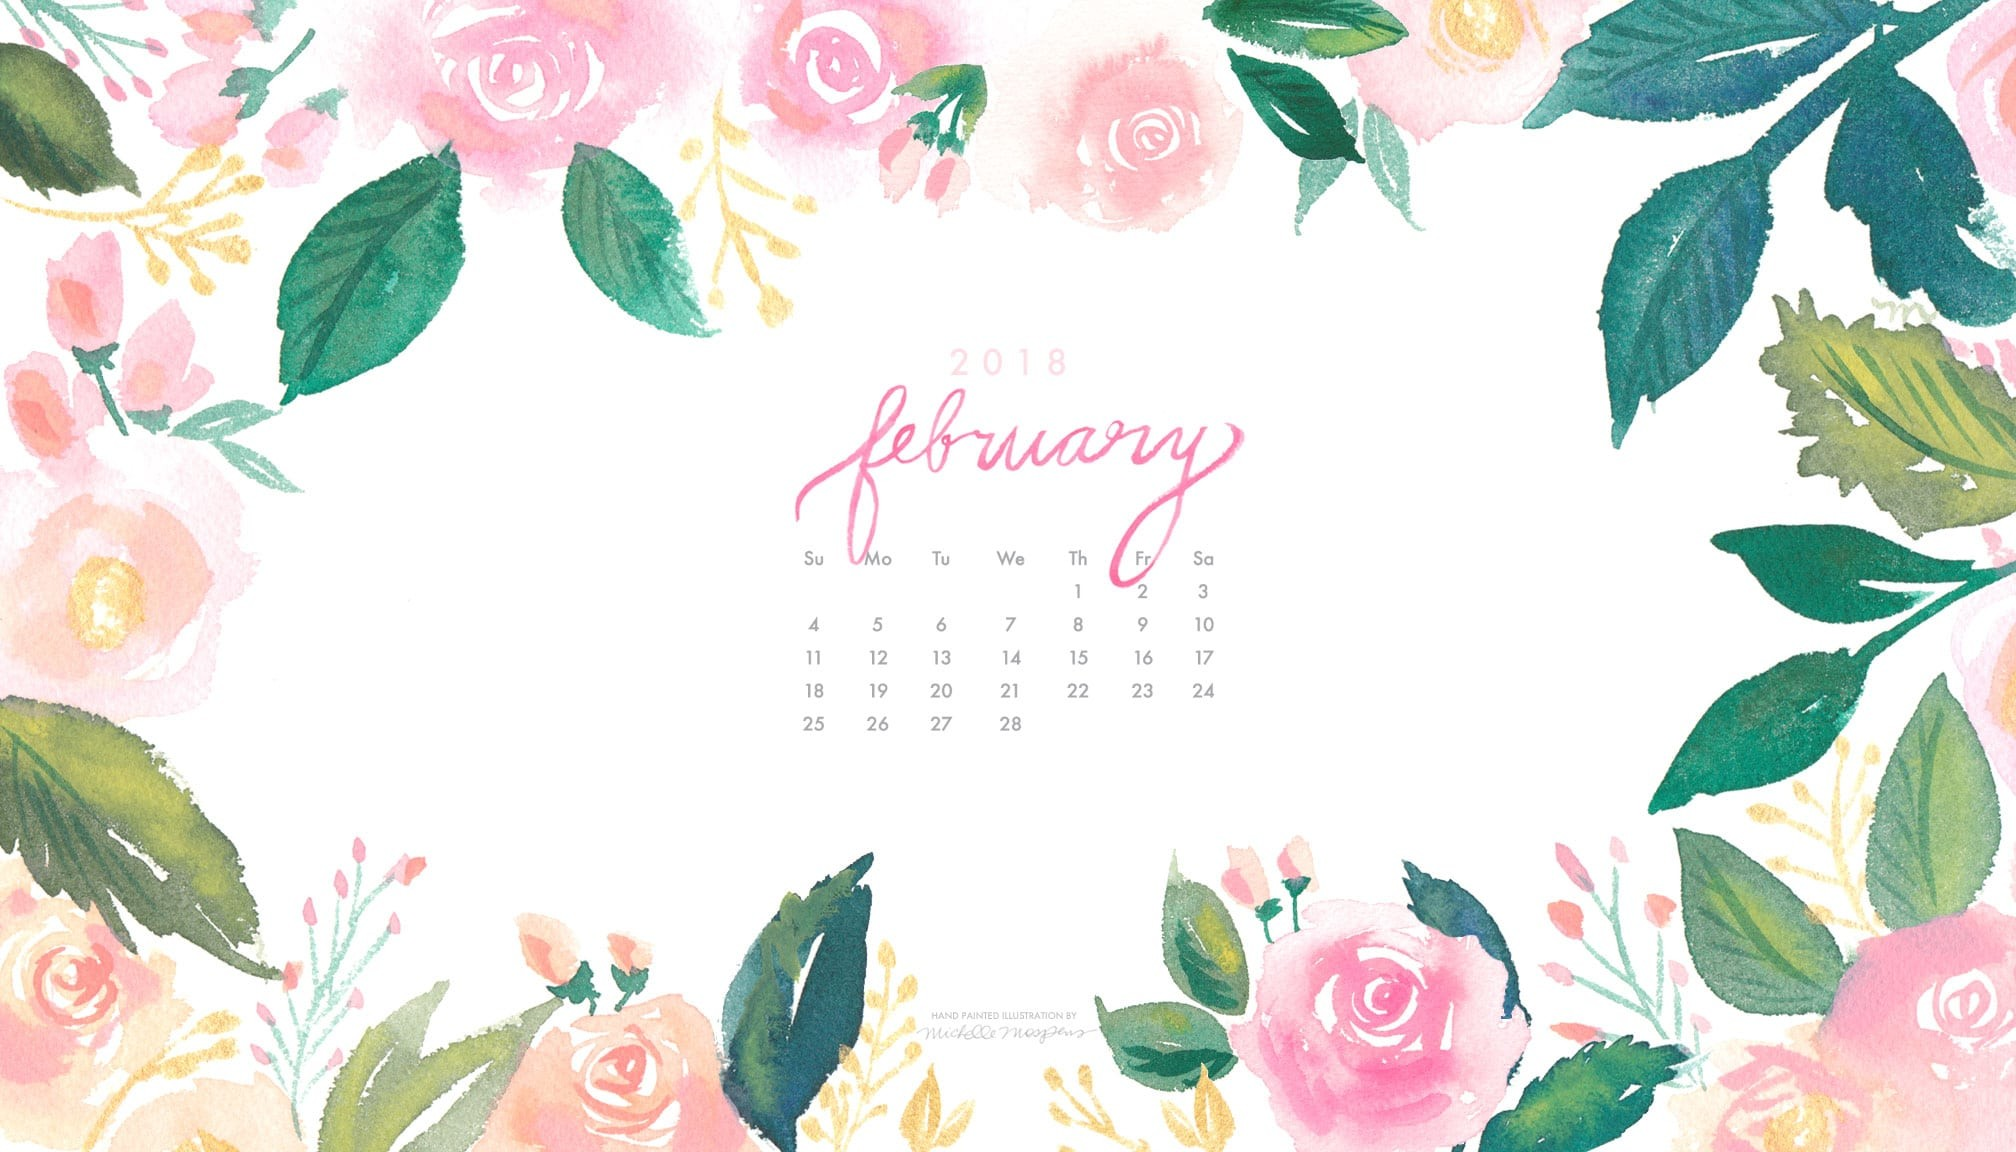 Download The Choice Of Your Watercolor Floral Wallpapers - Floral Calendar Desktop Wallpaper February 2019 , HD Wallpaper & Backgrounds